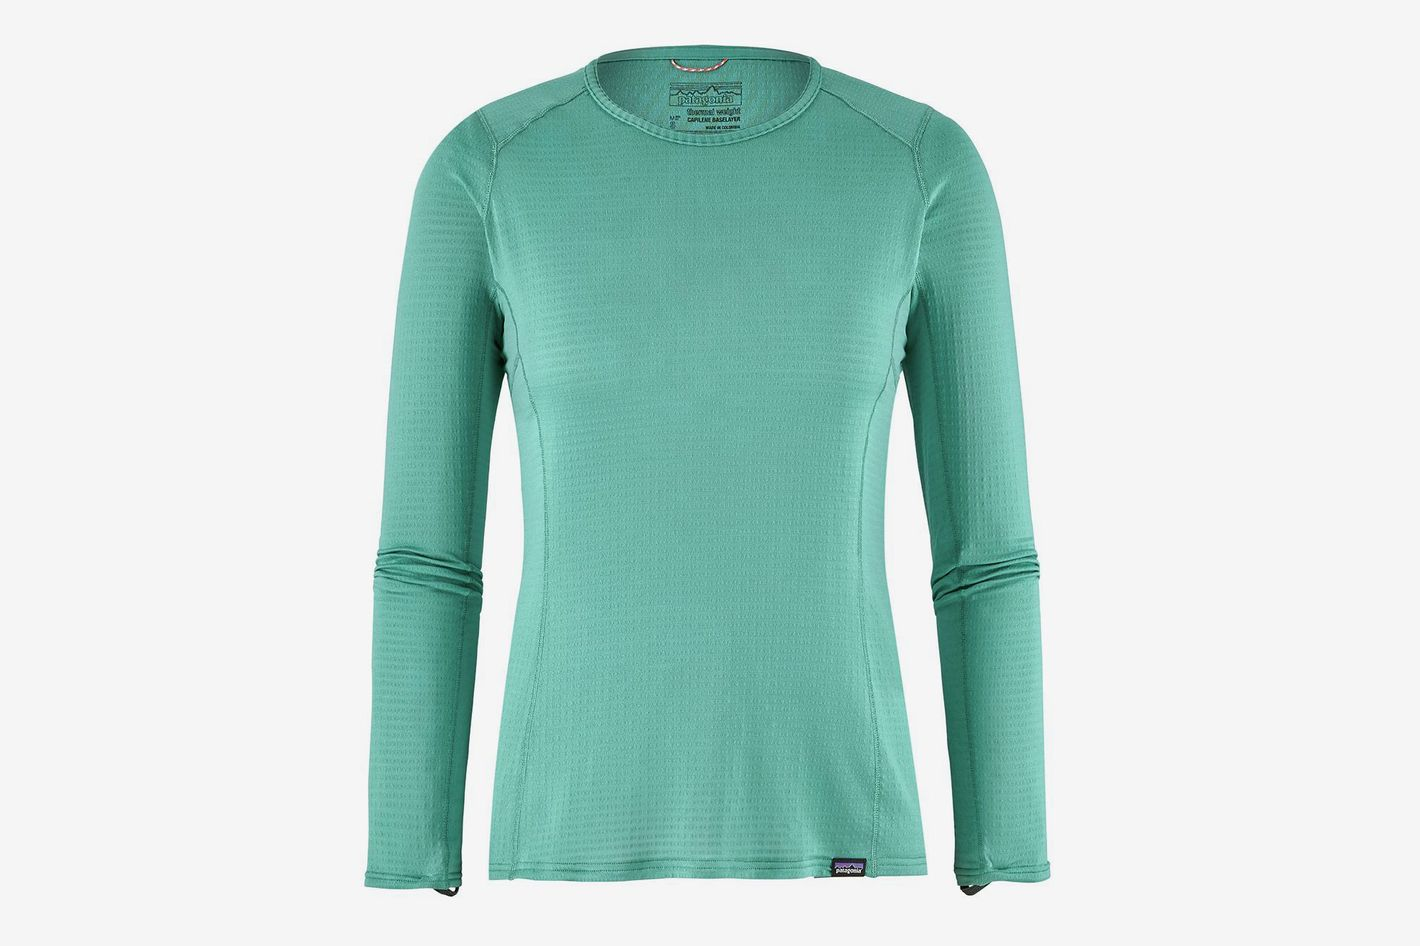 Patagonia Women's Capilene Thermal Weight Crew